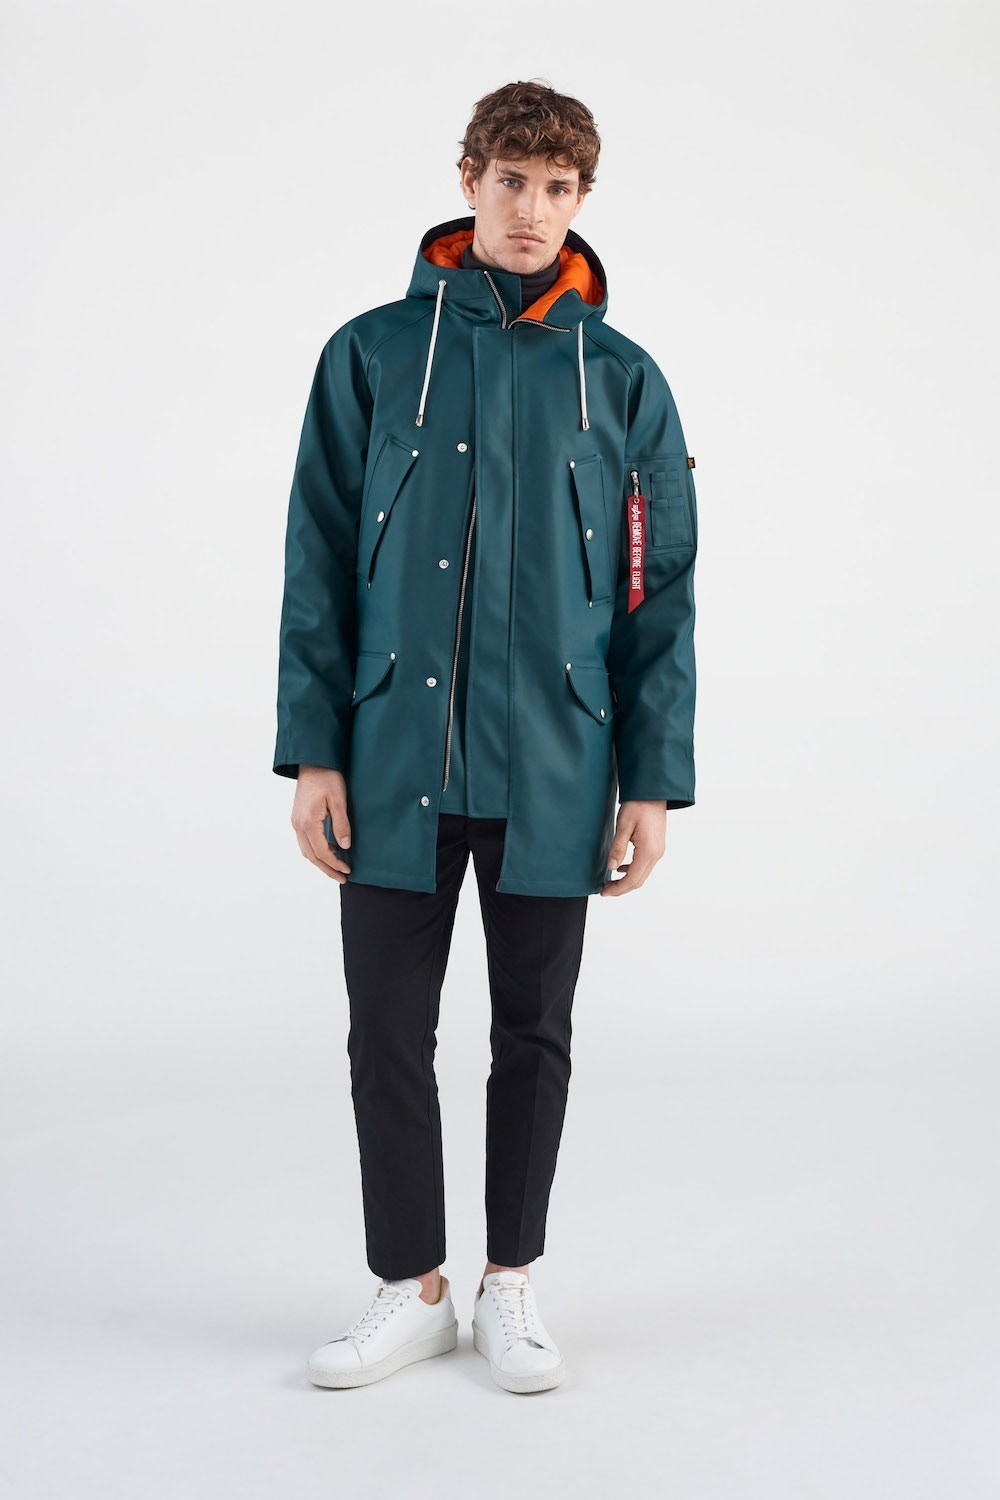 Alpha Industries x Stutterheim Announce Outerwear Capsule Collection